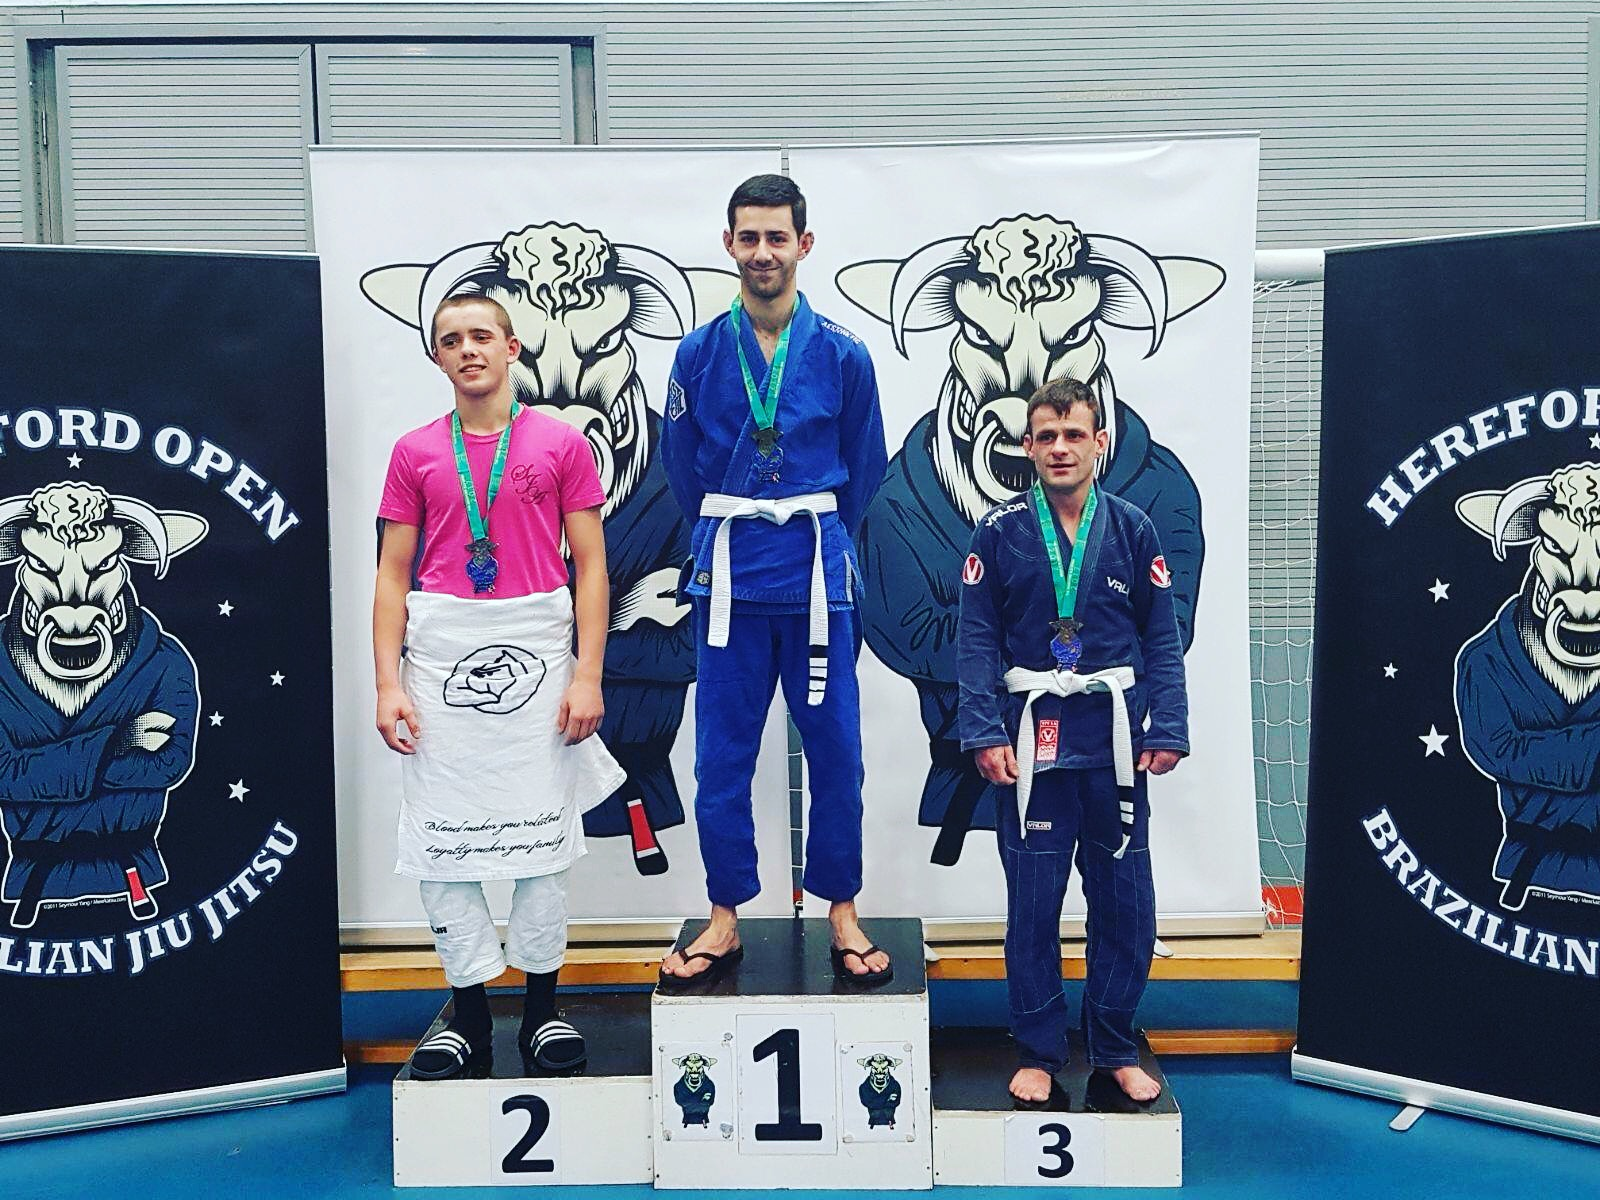 Jalal won gold at The Hereford Open